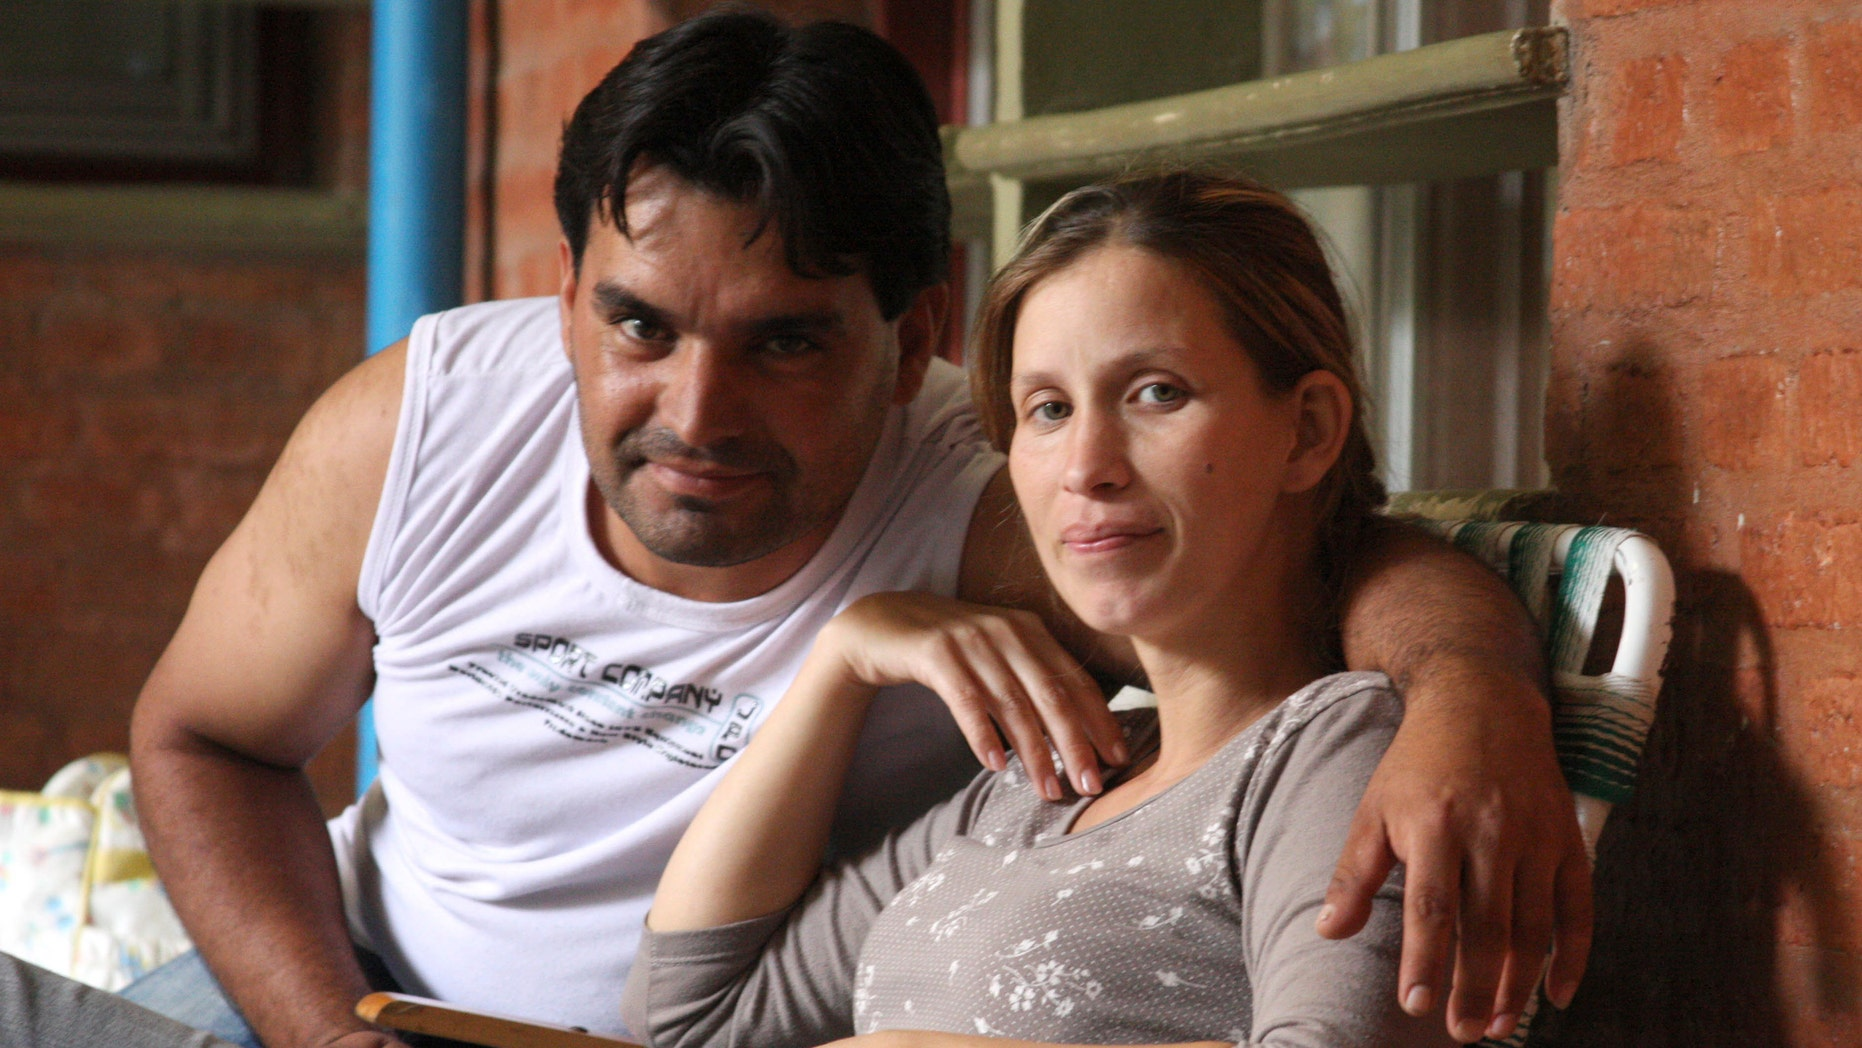 Analia Bouter and her husband Fabian Veron pose for a photo outside the hospital in Resistencia, Argentina, Wednesday April 11, 2012.  (AP Photo/Juan Pablo Faccioli)